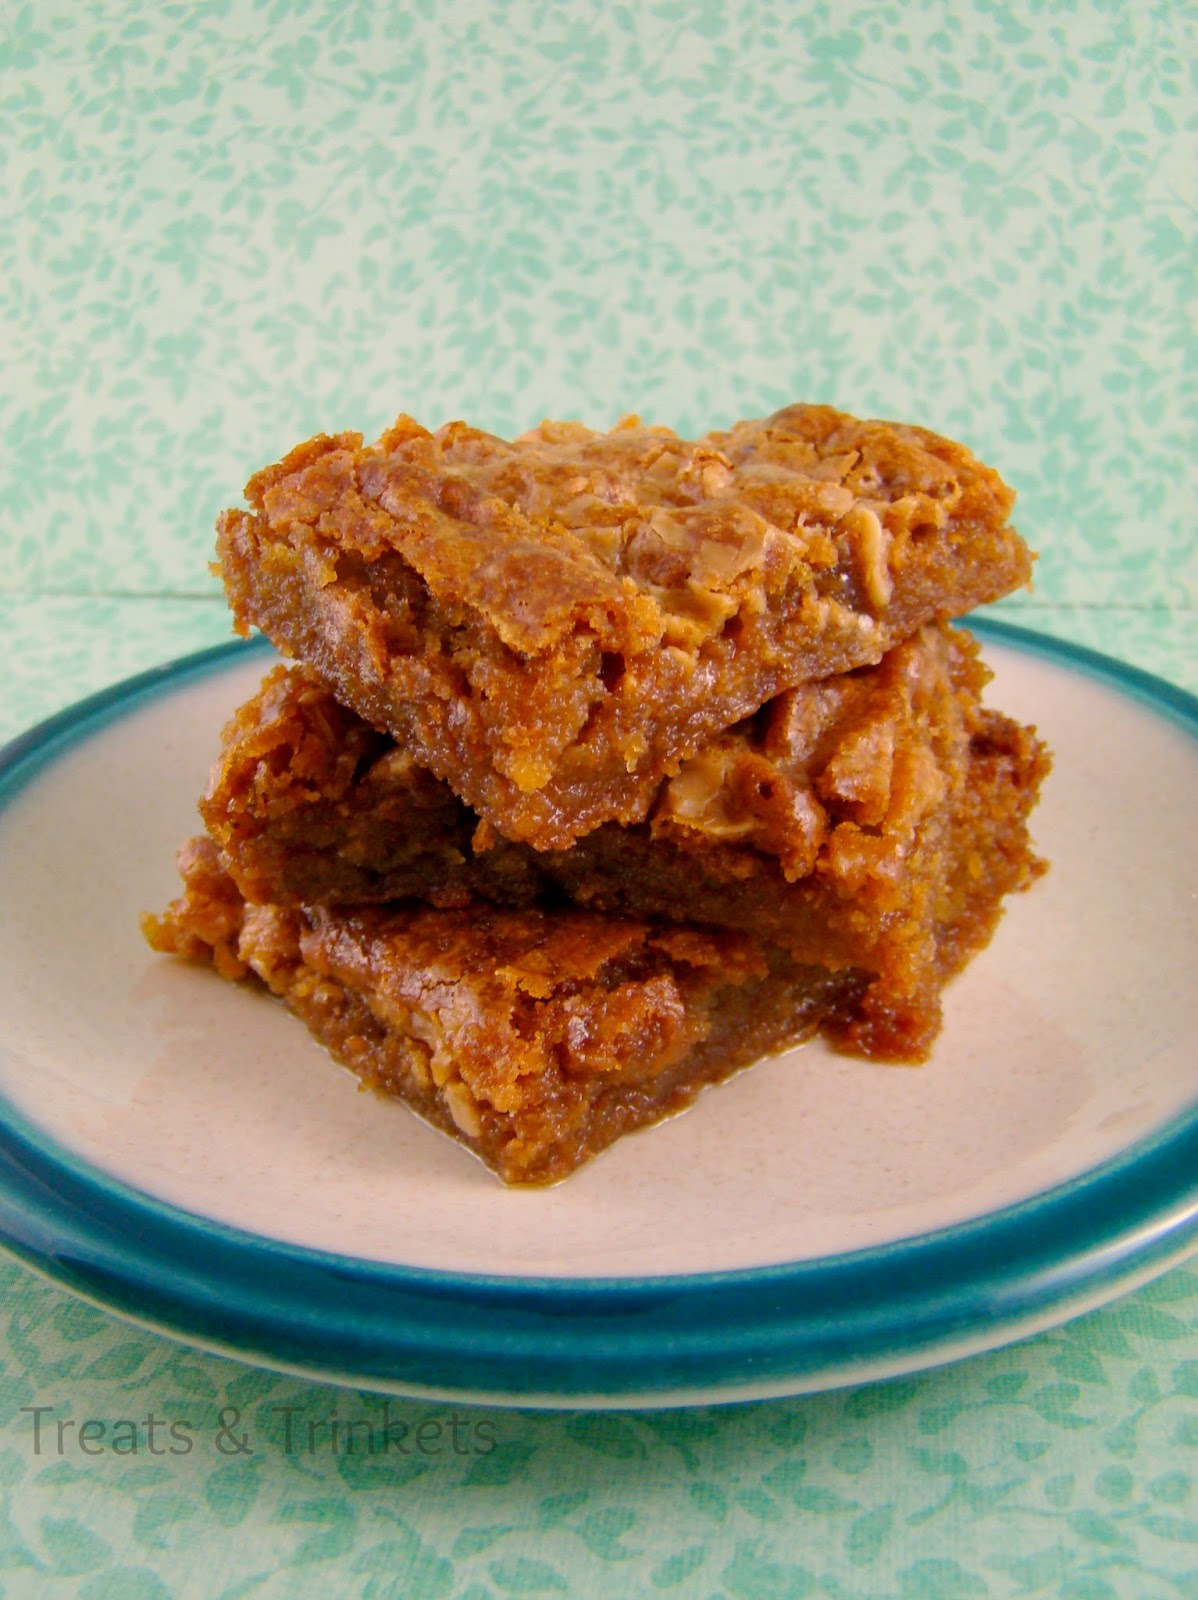 Treats & Trinkets: Maple Browned Butter Blondies